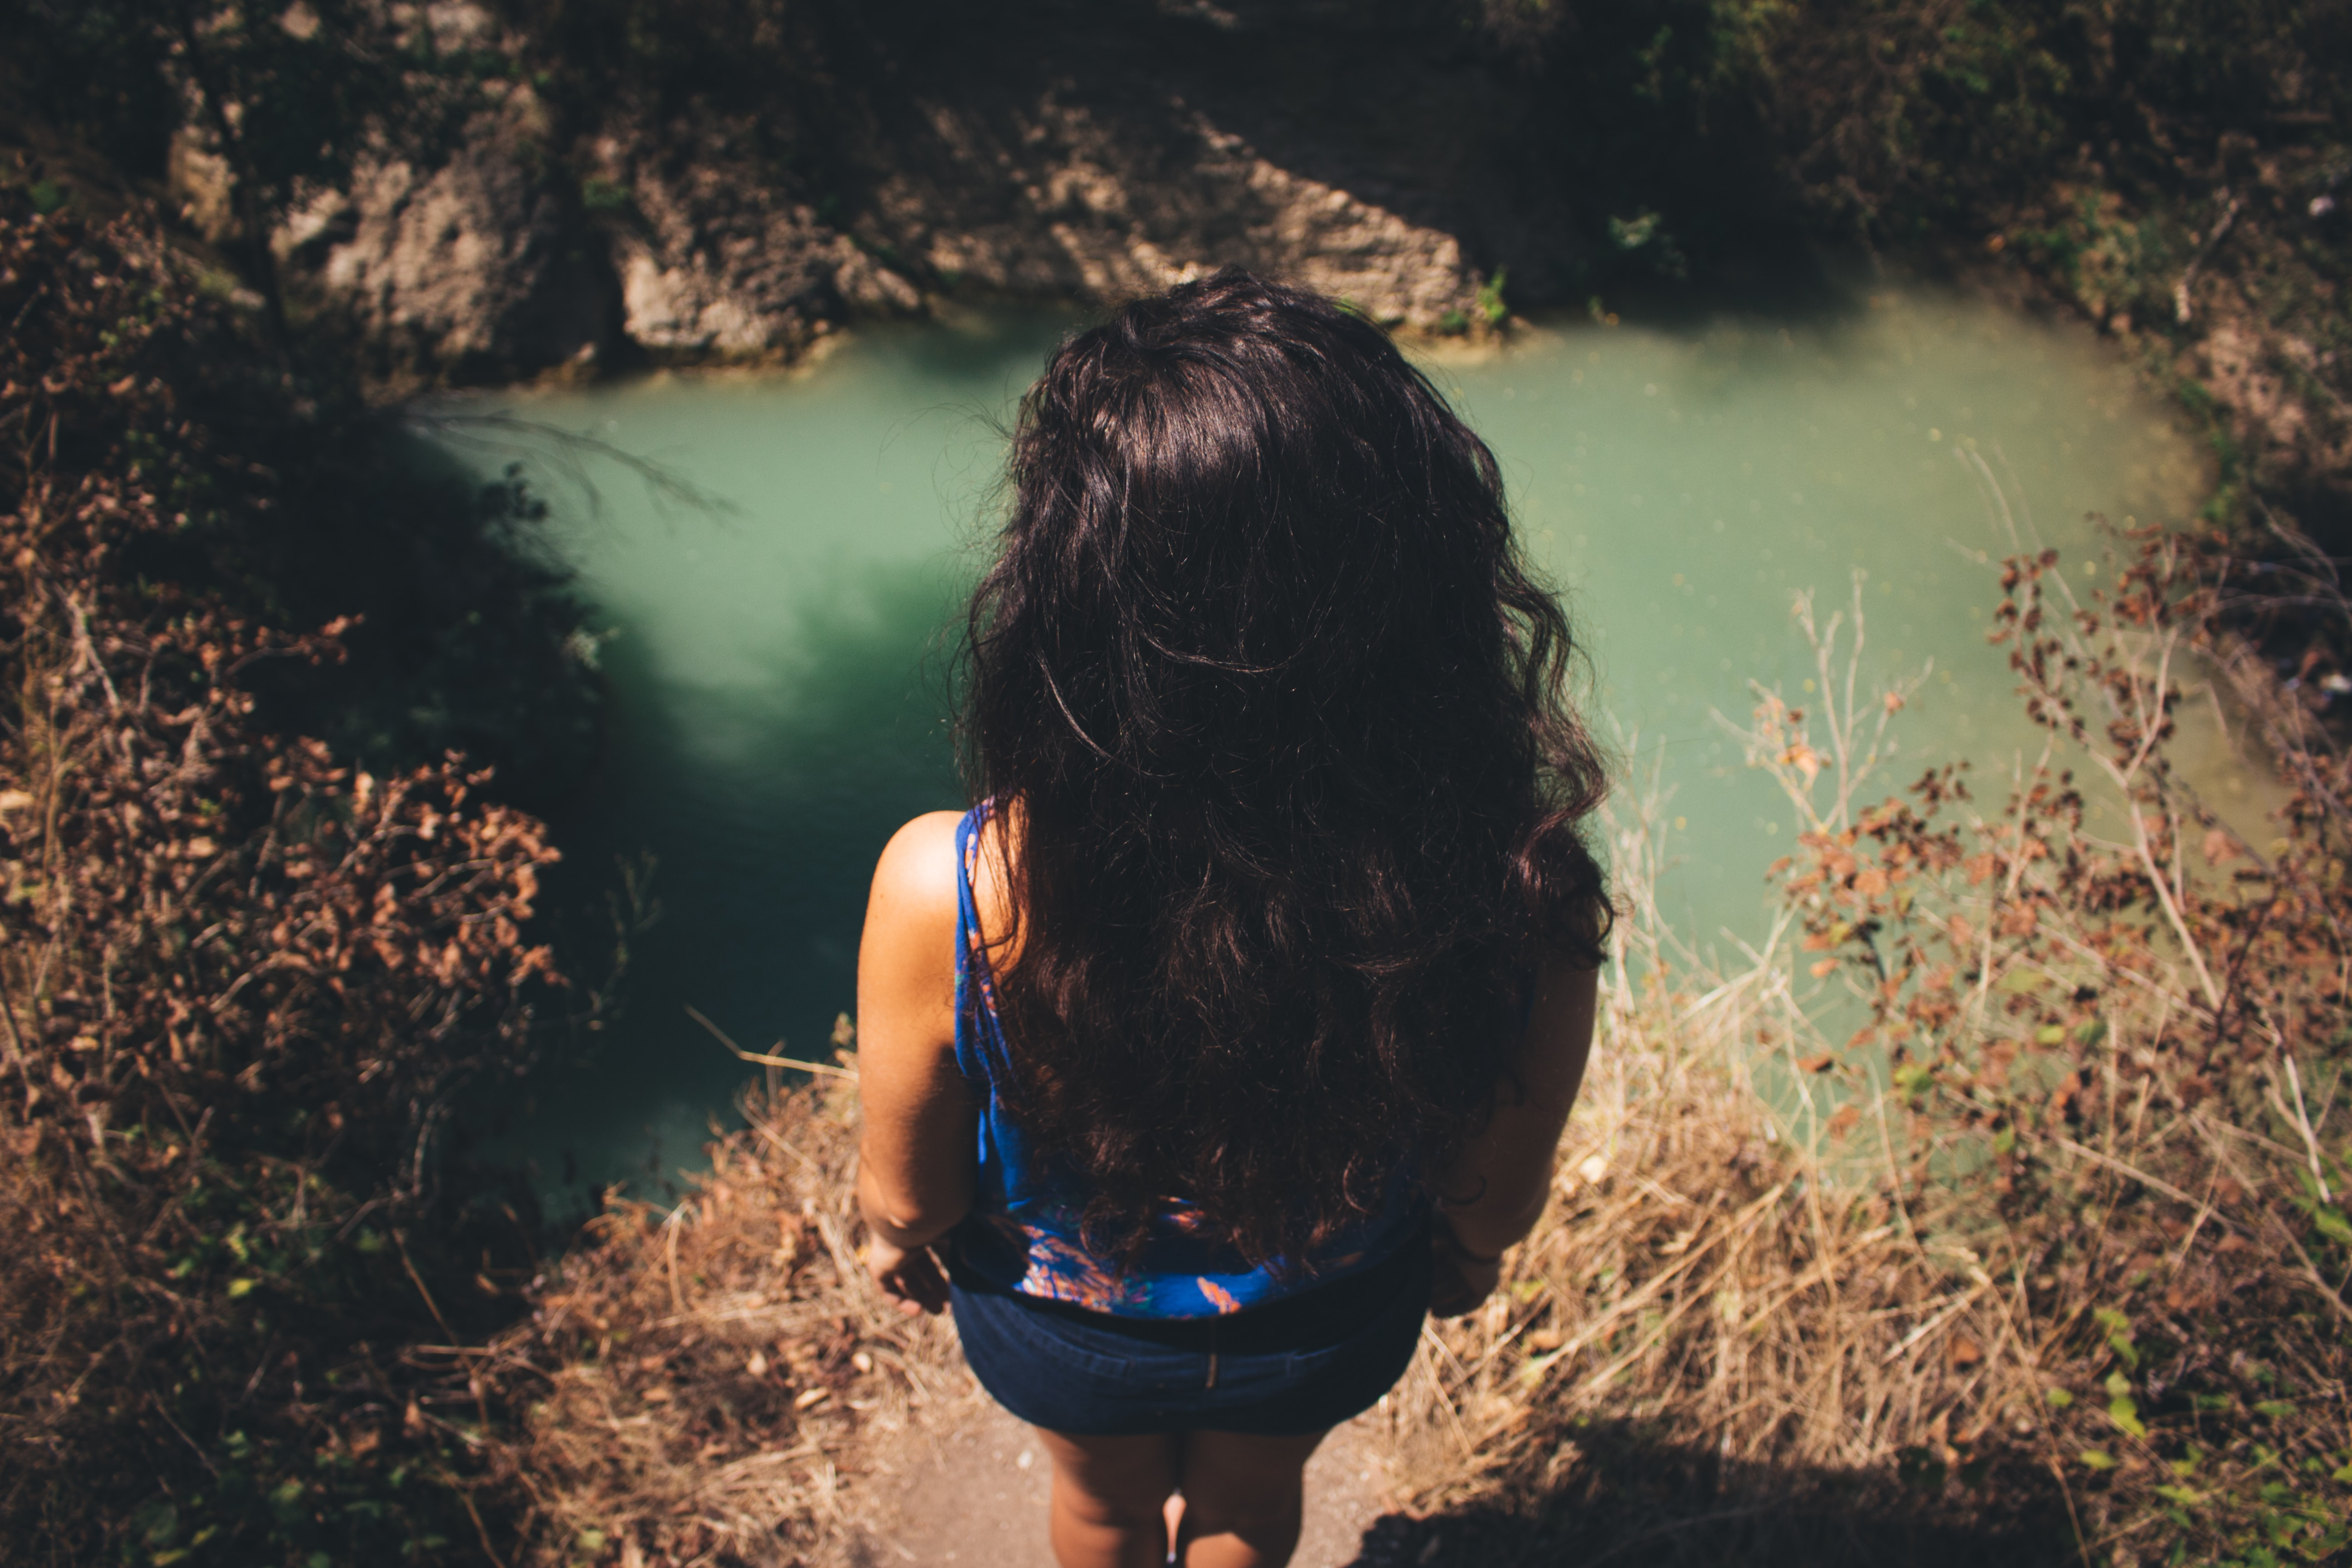 Woman with long hair stairs down at a secluded pond